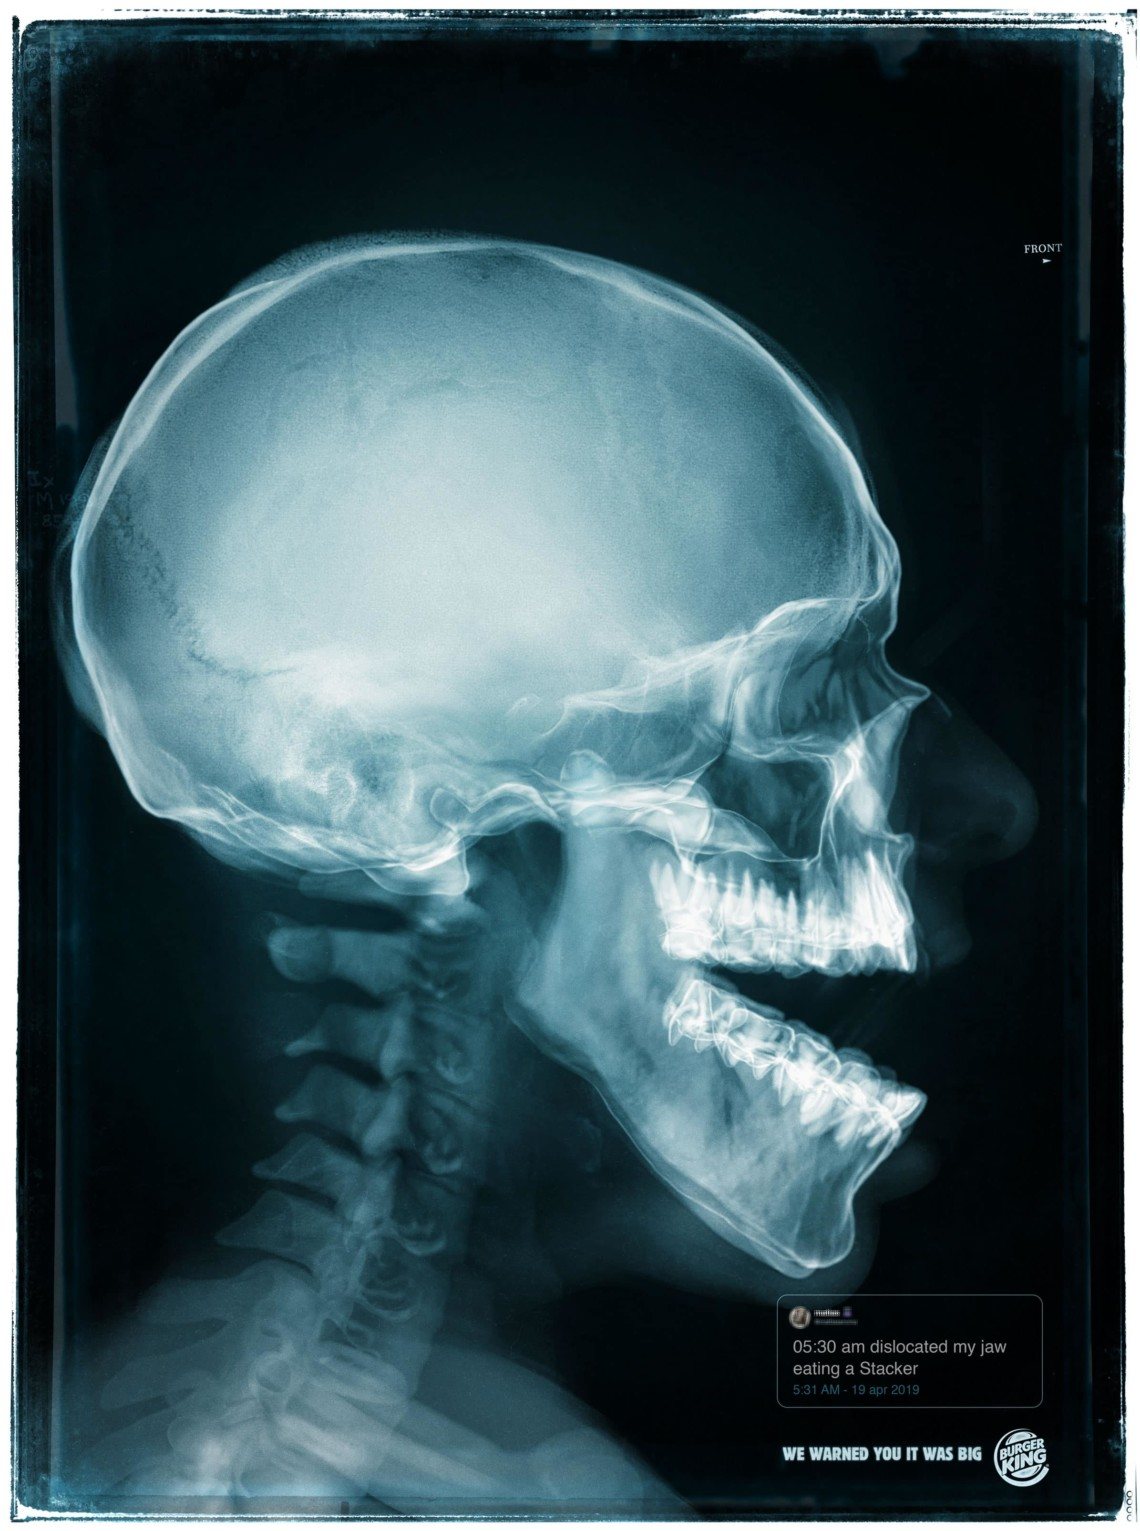 An X-ray of a jaw injury as a result of eating a Whopper is shown.